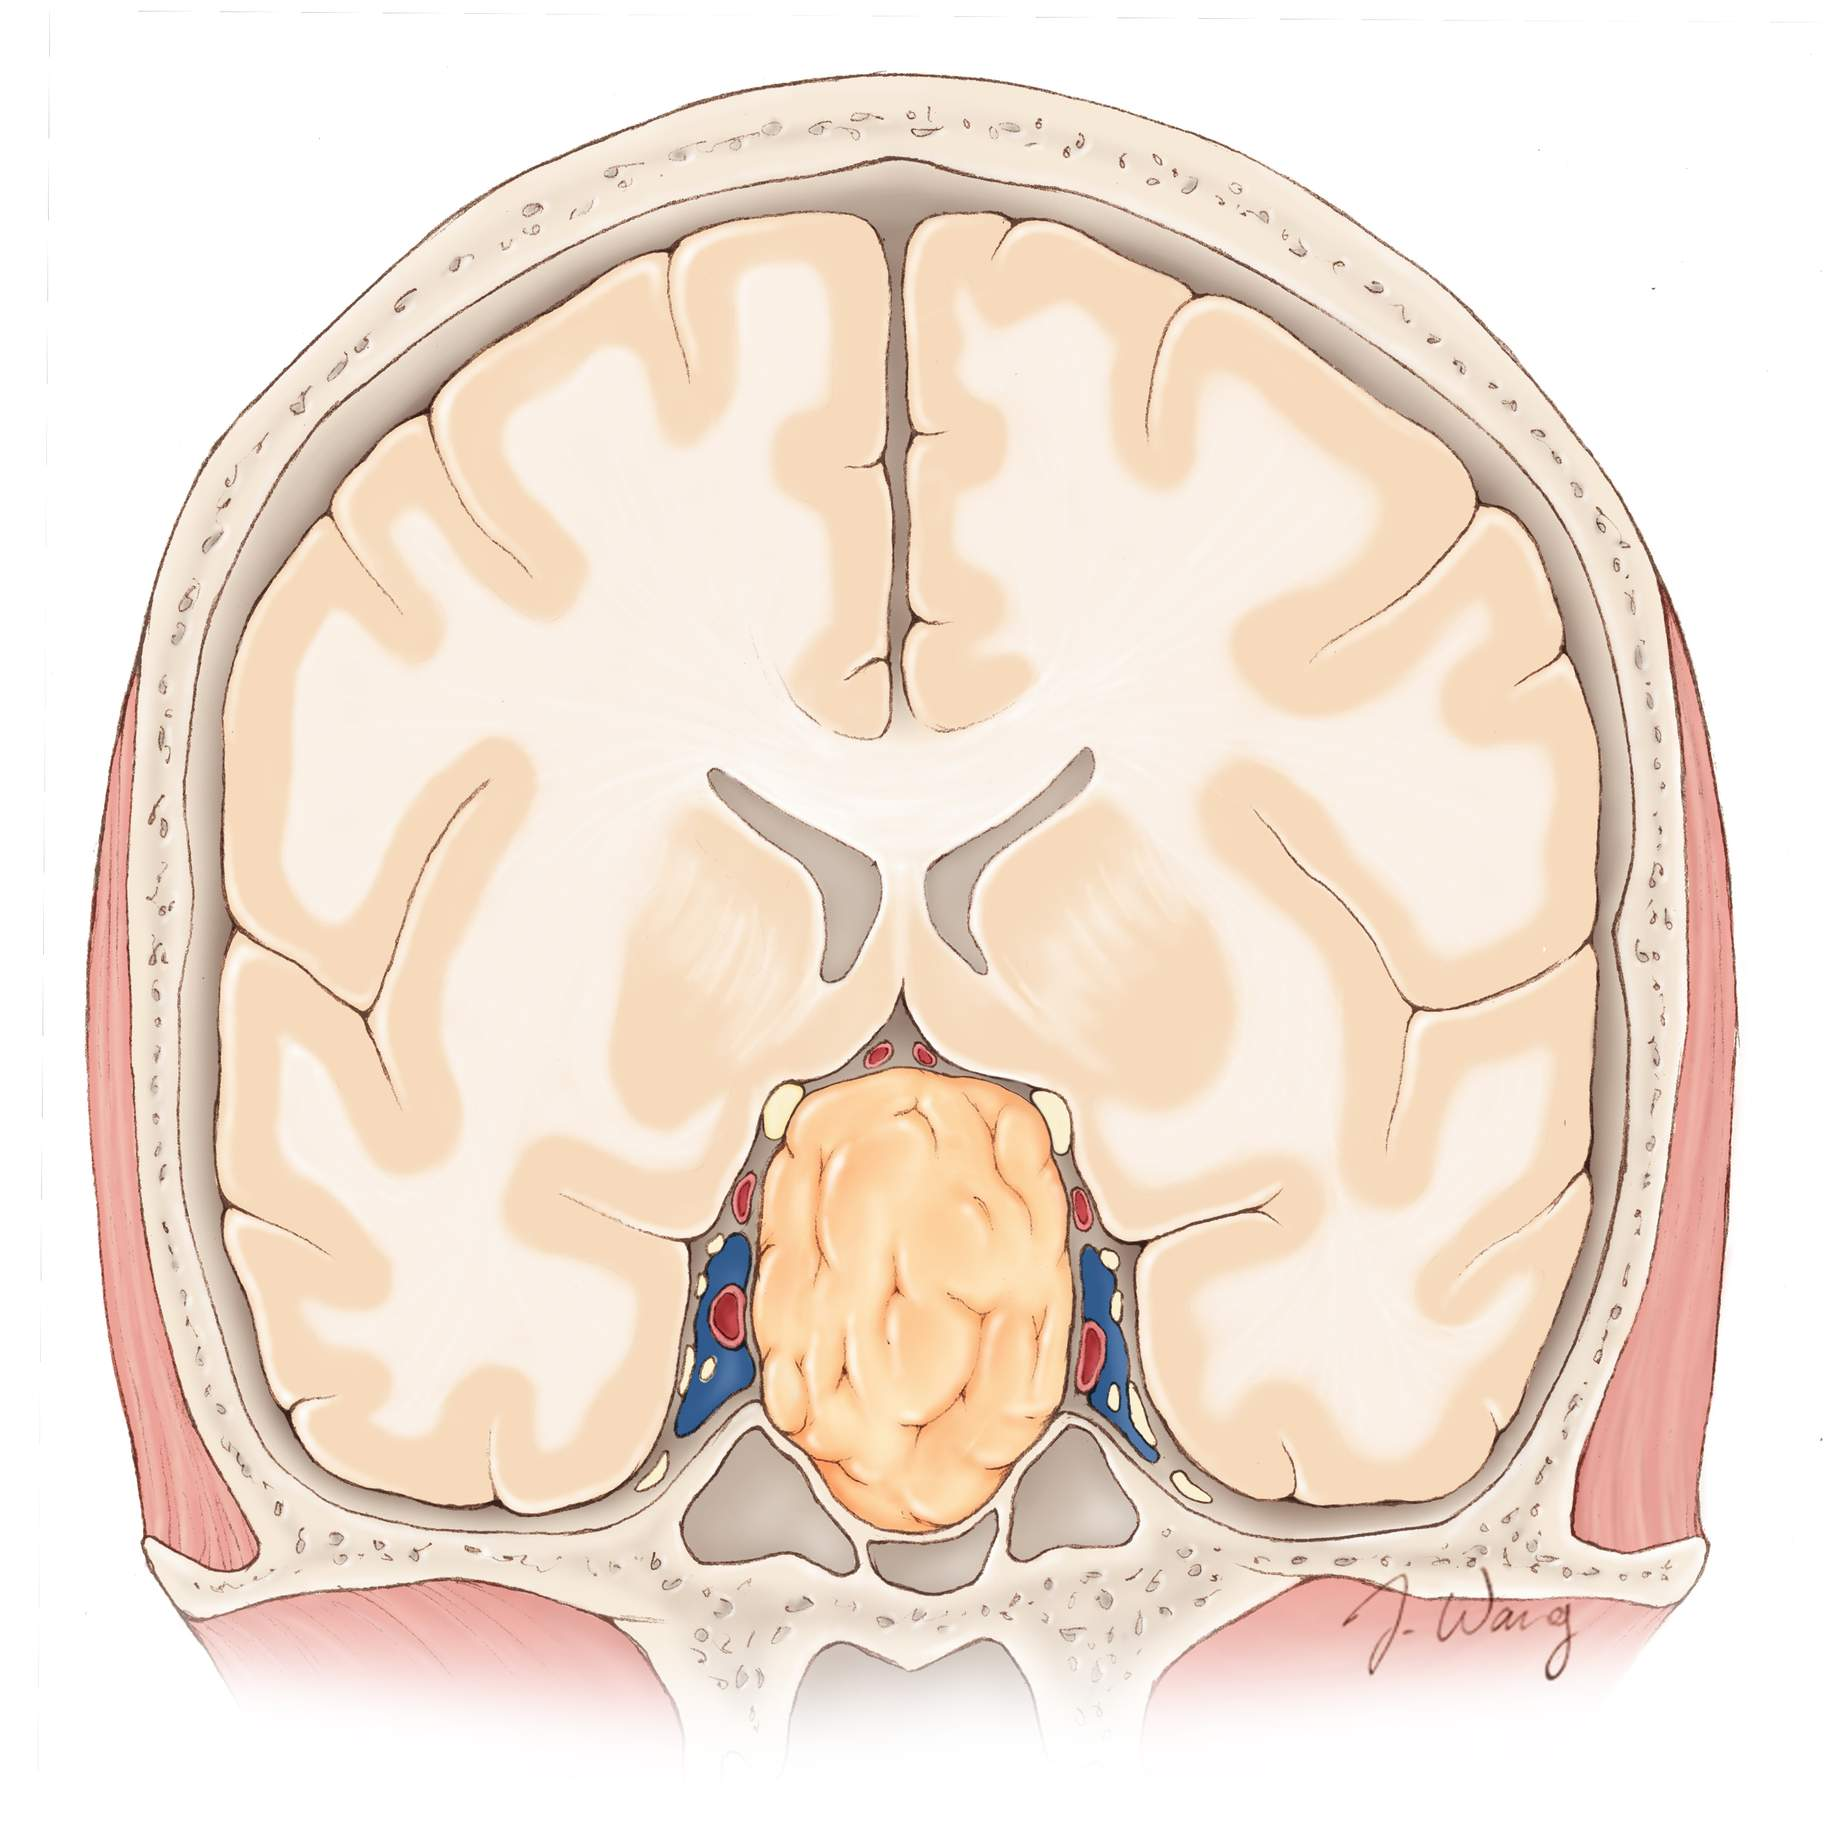 Figure 1. Cross-section of a pituitary tumor.